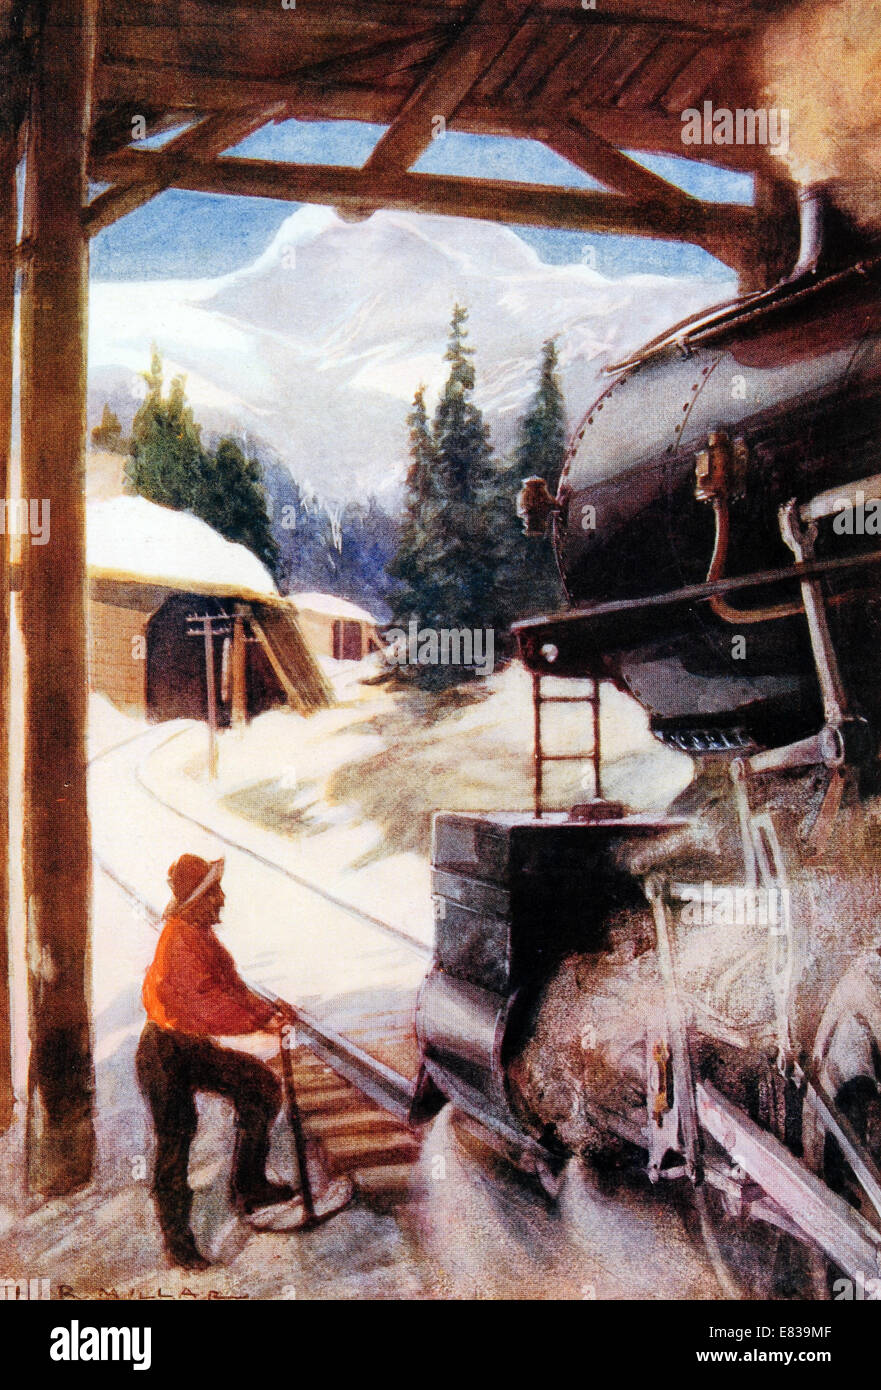 Conquest of the avalanche snow shed circa 1910 Stock Photo